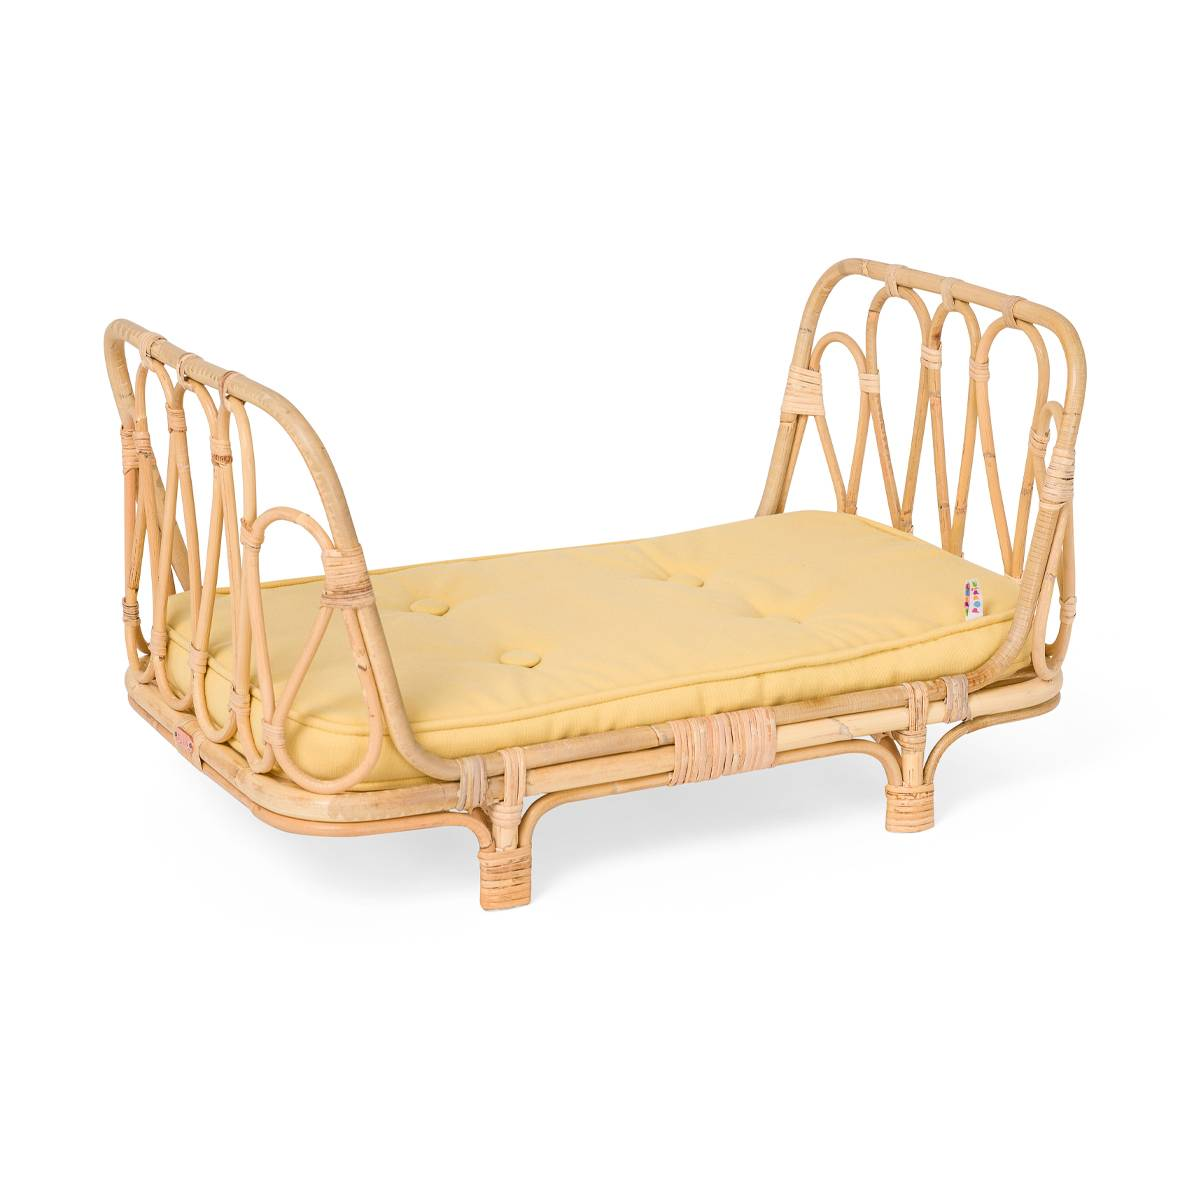 Poppie Toys Rattan Doll Daybed (Color: Yellow)